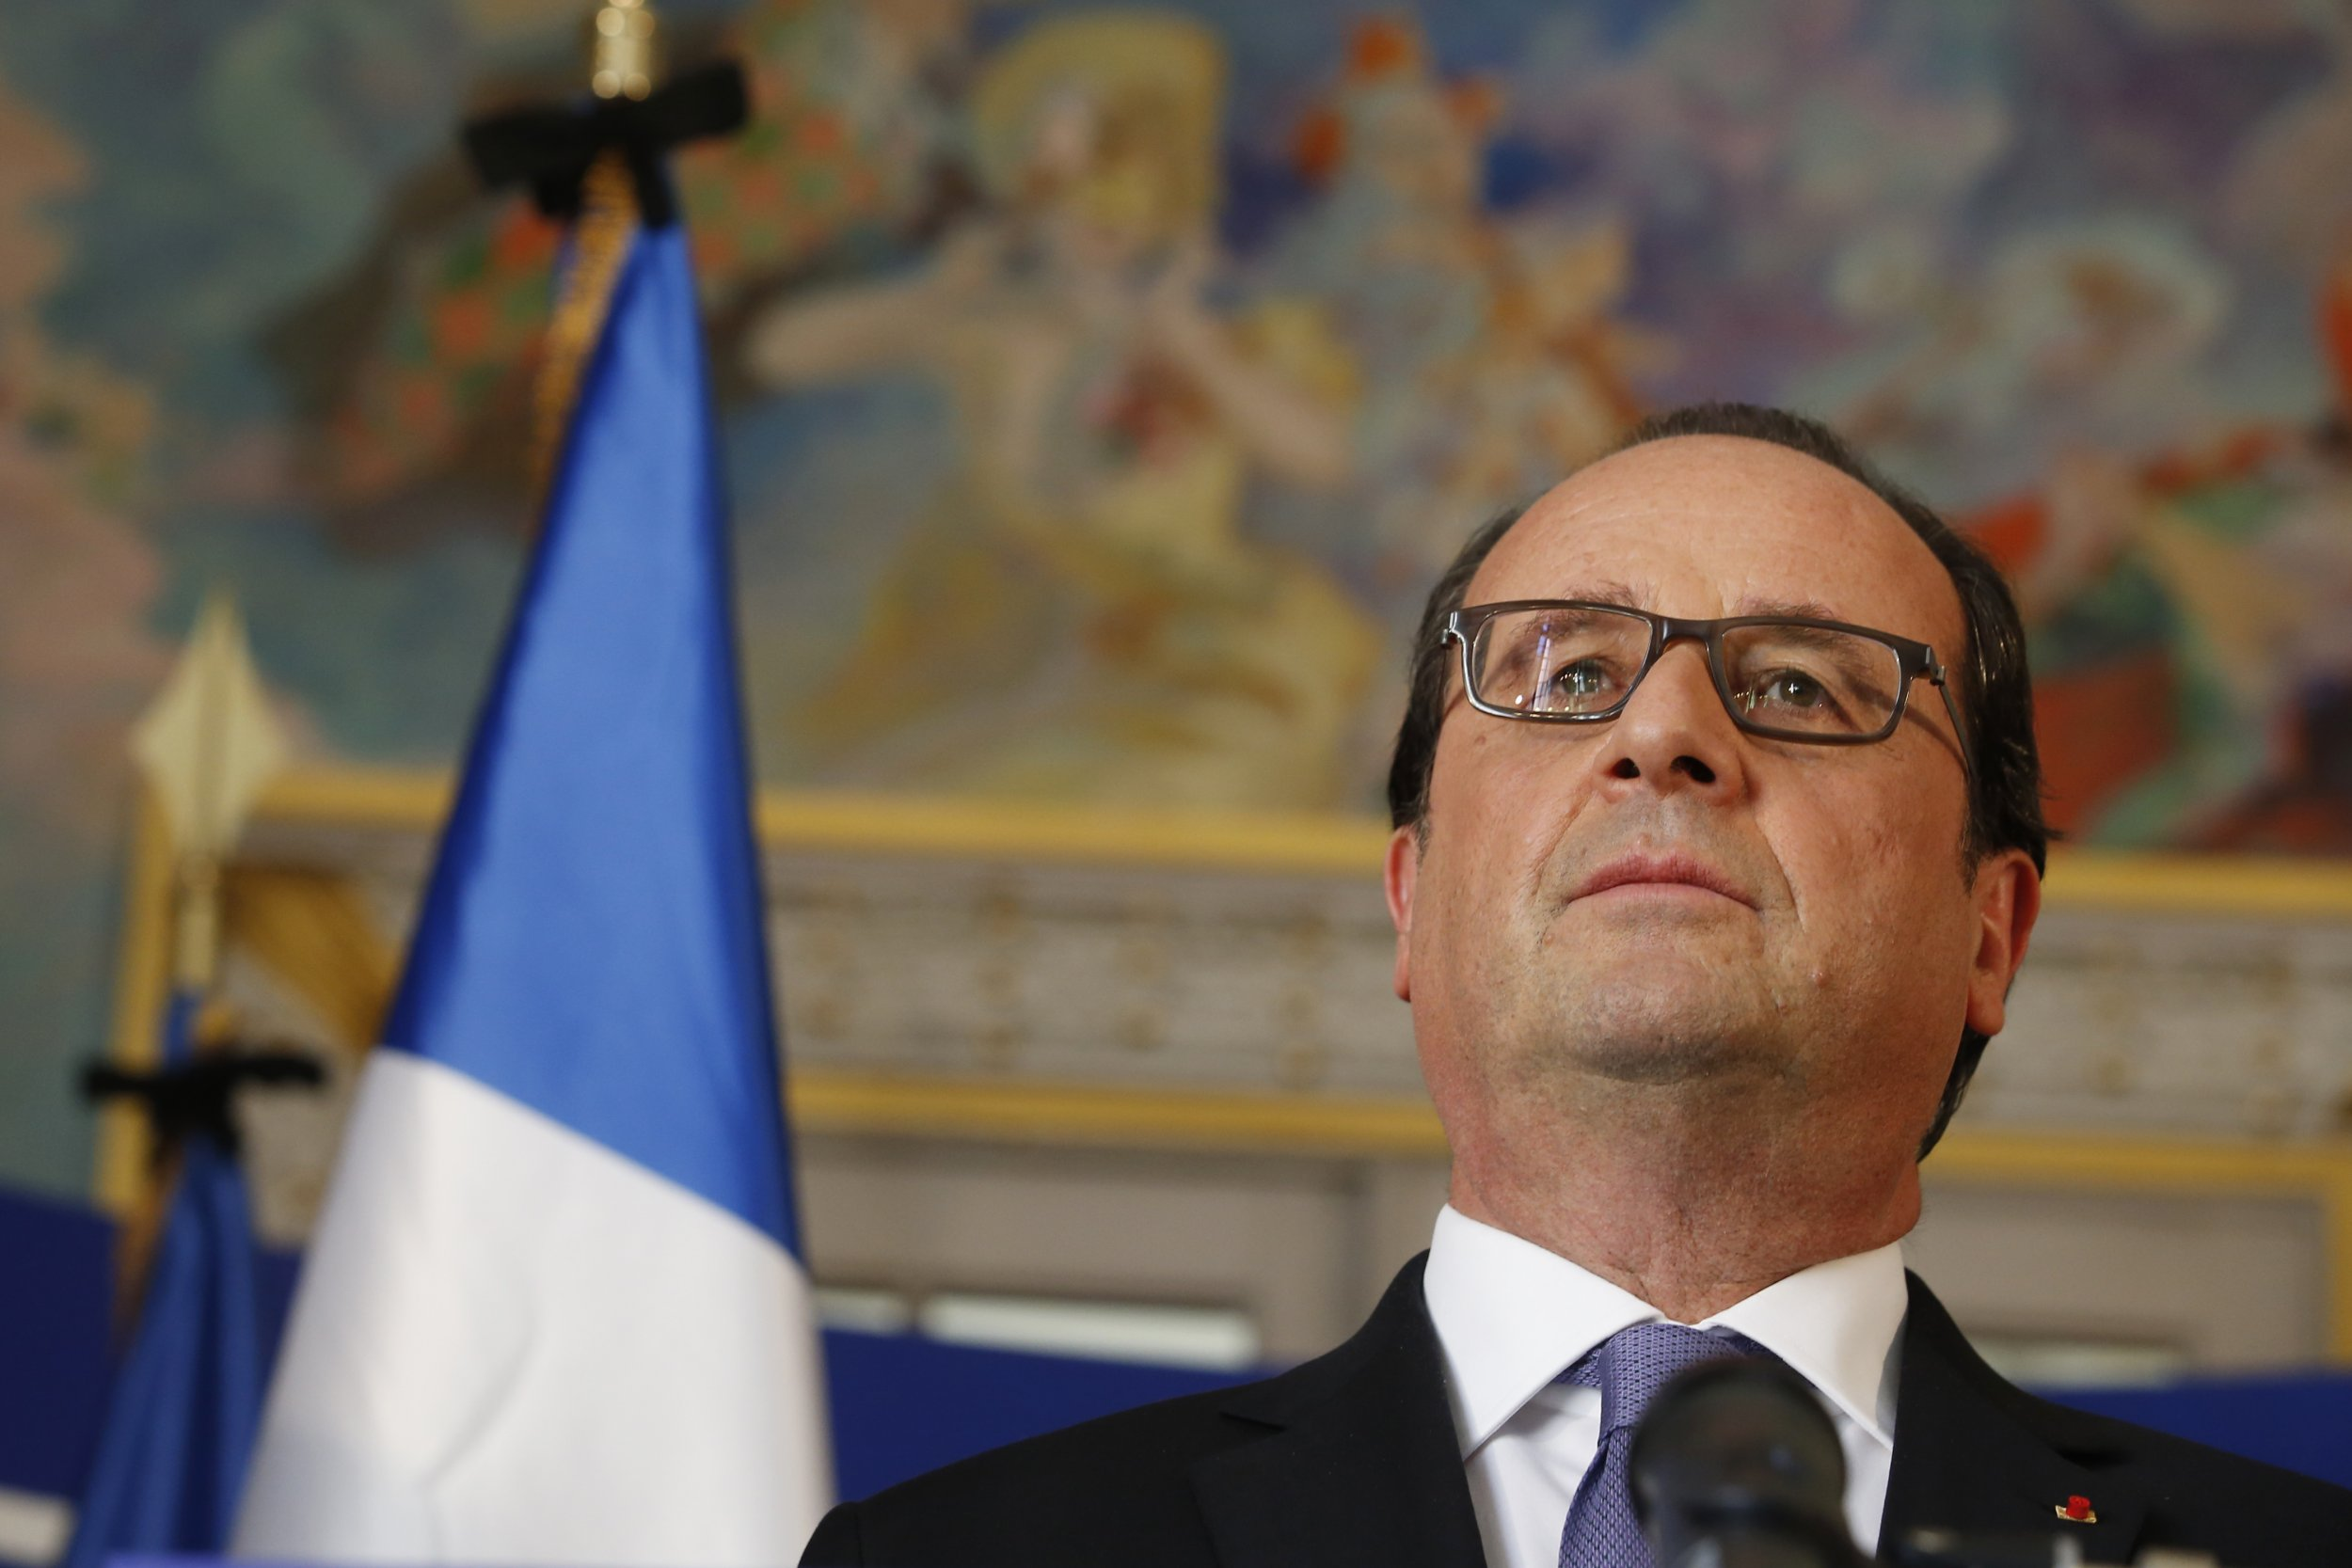 French President Francois Hollande after Nice attack